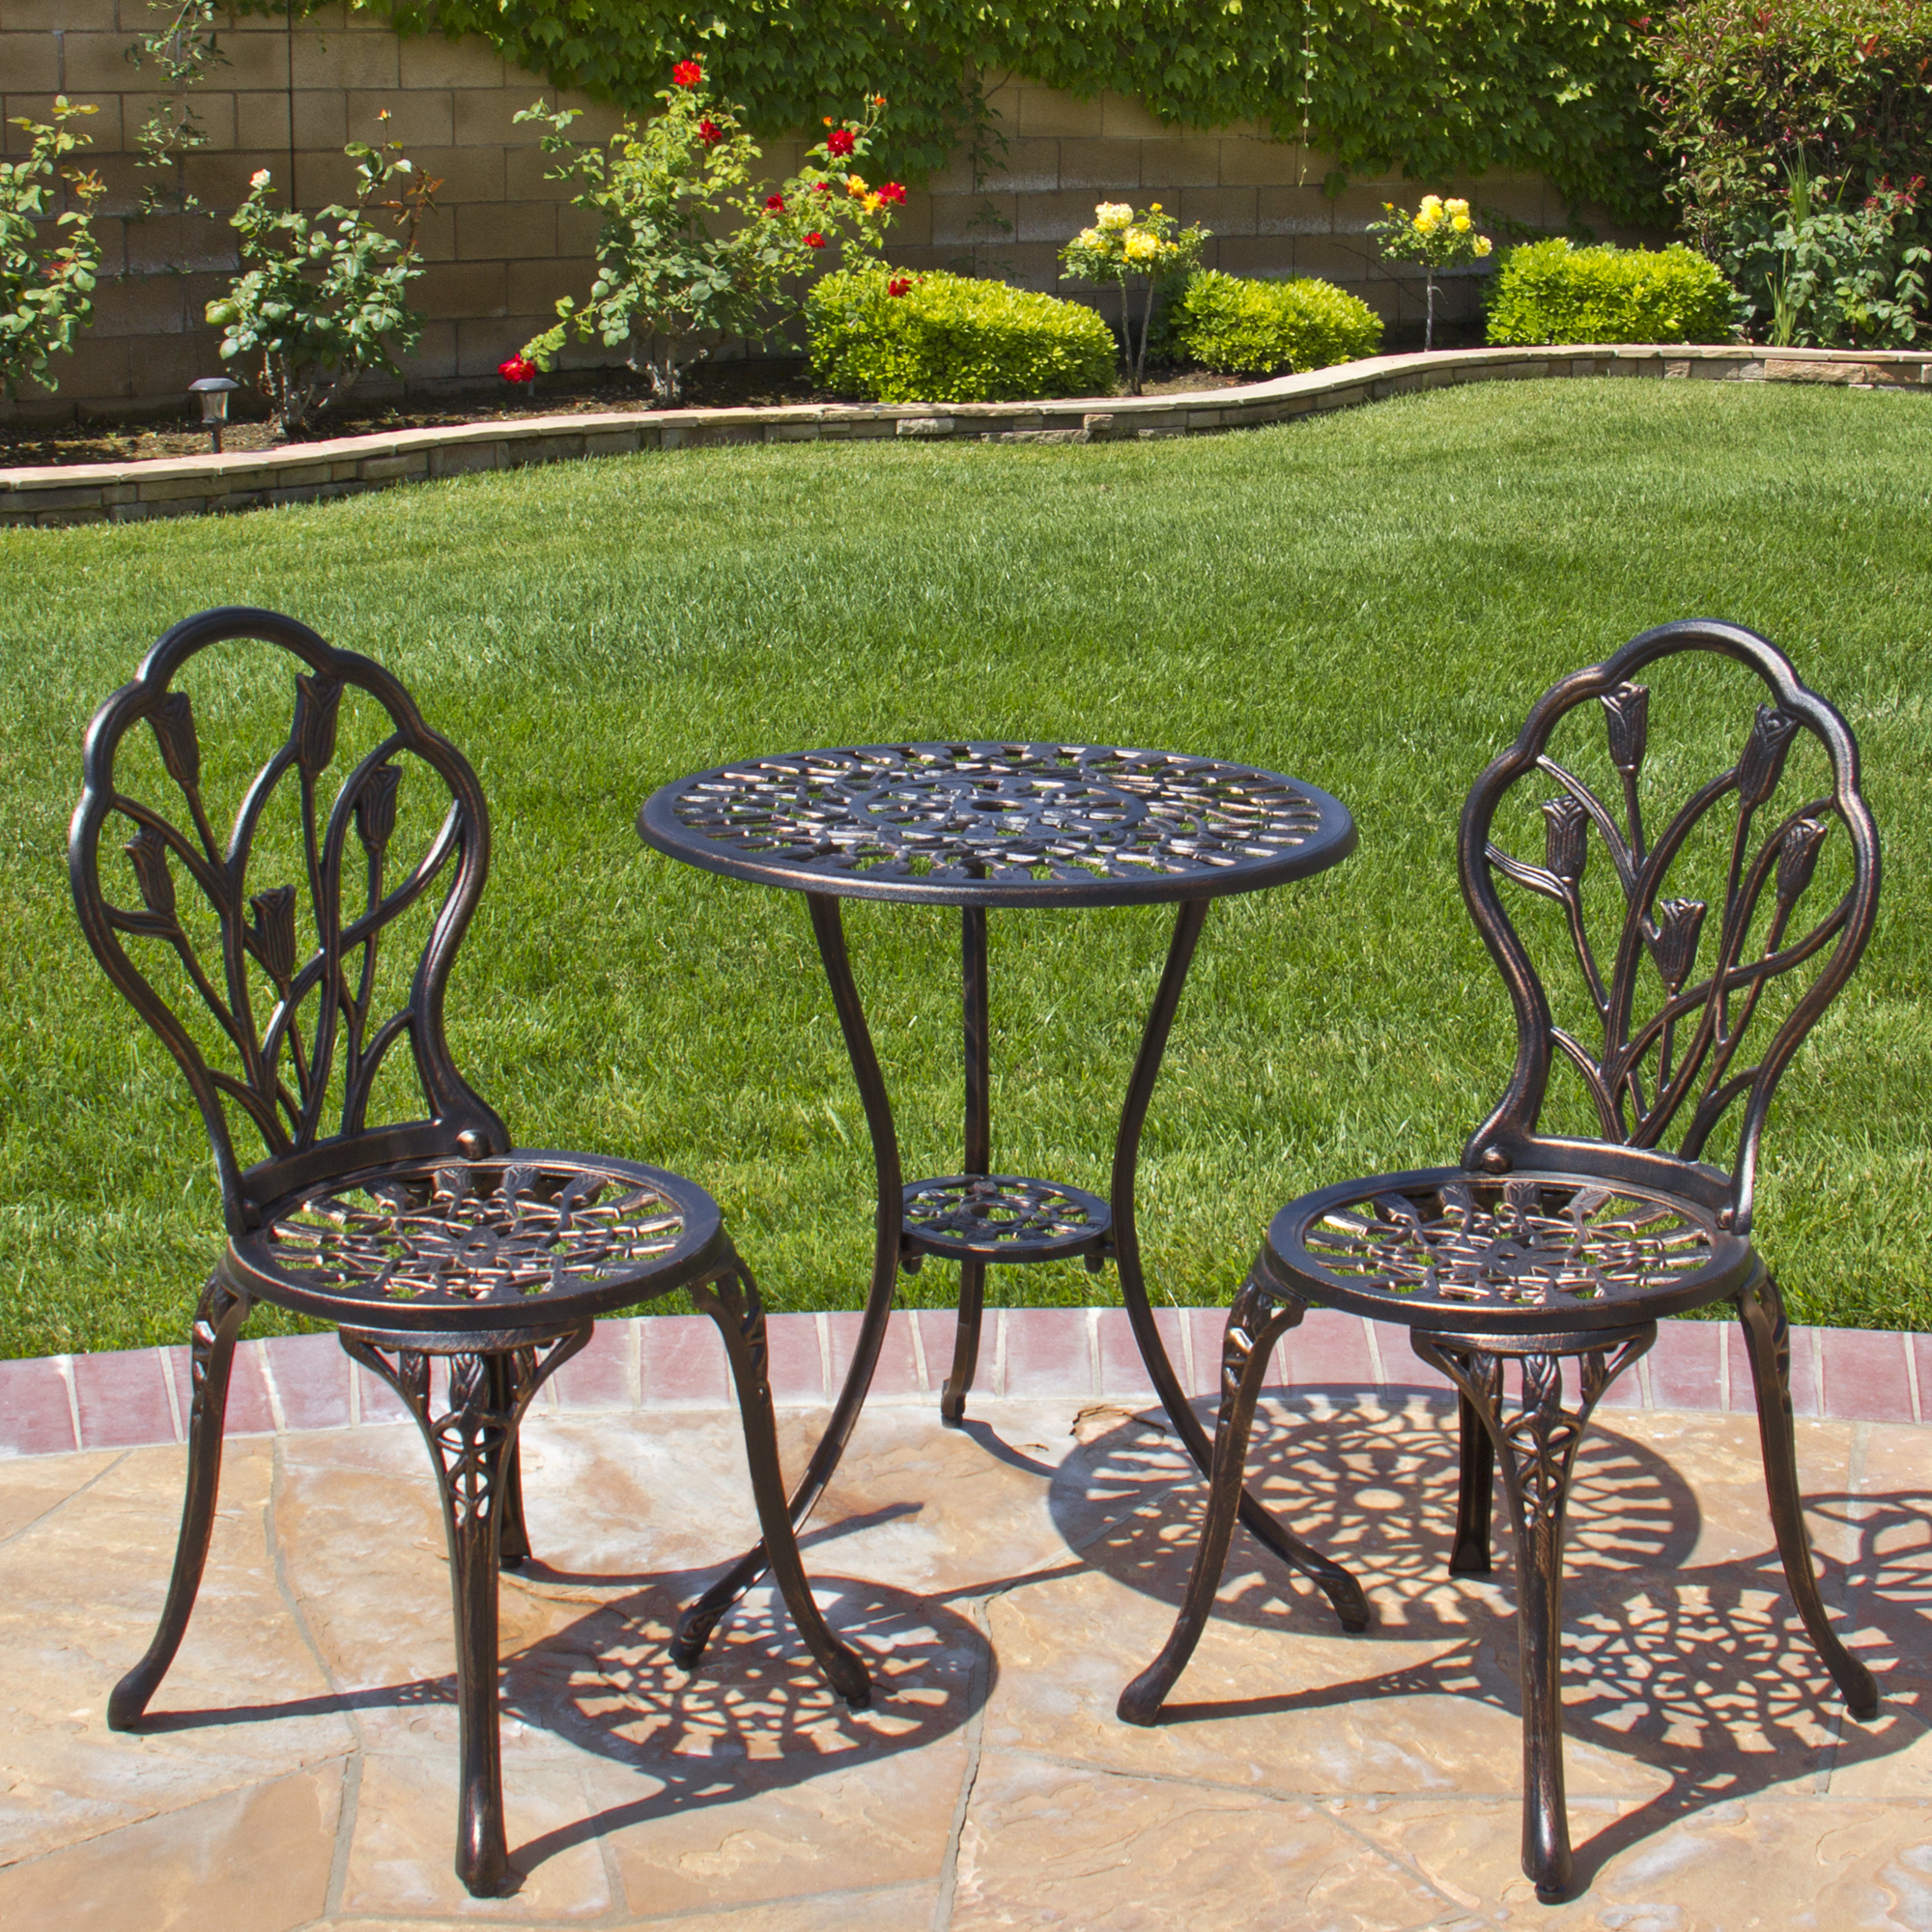 bistro patio set best choice products cast aluminum patio bistro furniture set in antique  copper LYMLYYX